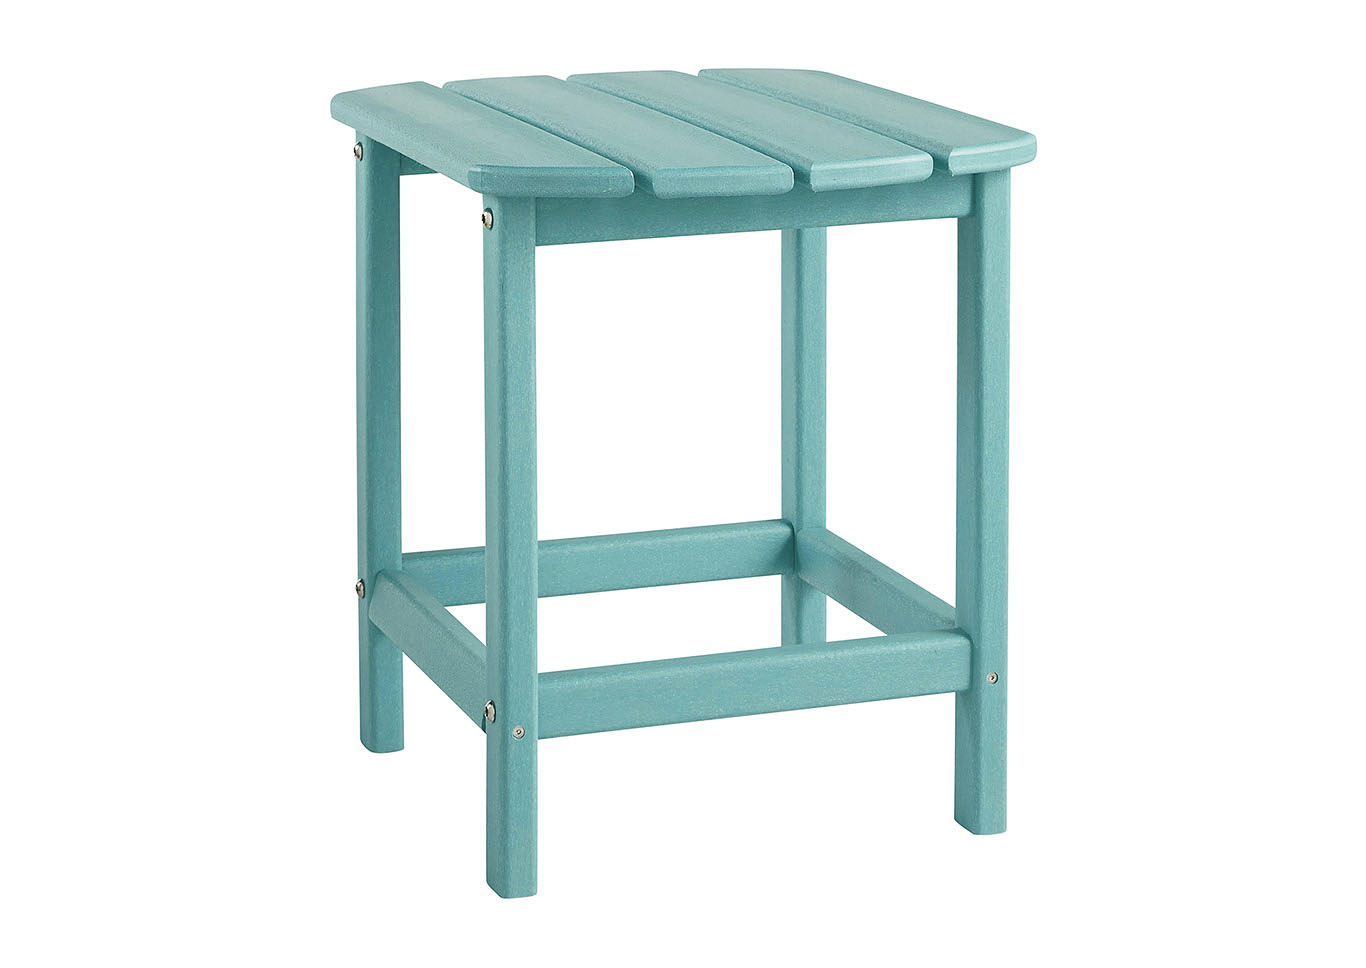 Sundown Treasure Turquoise End Table,Outdoor By Ashley